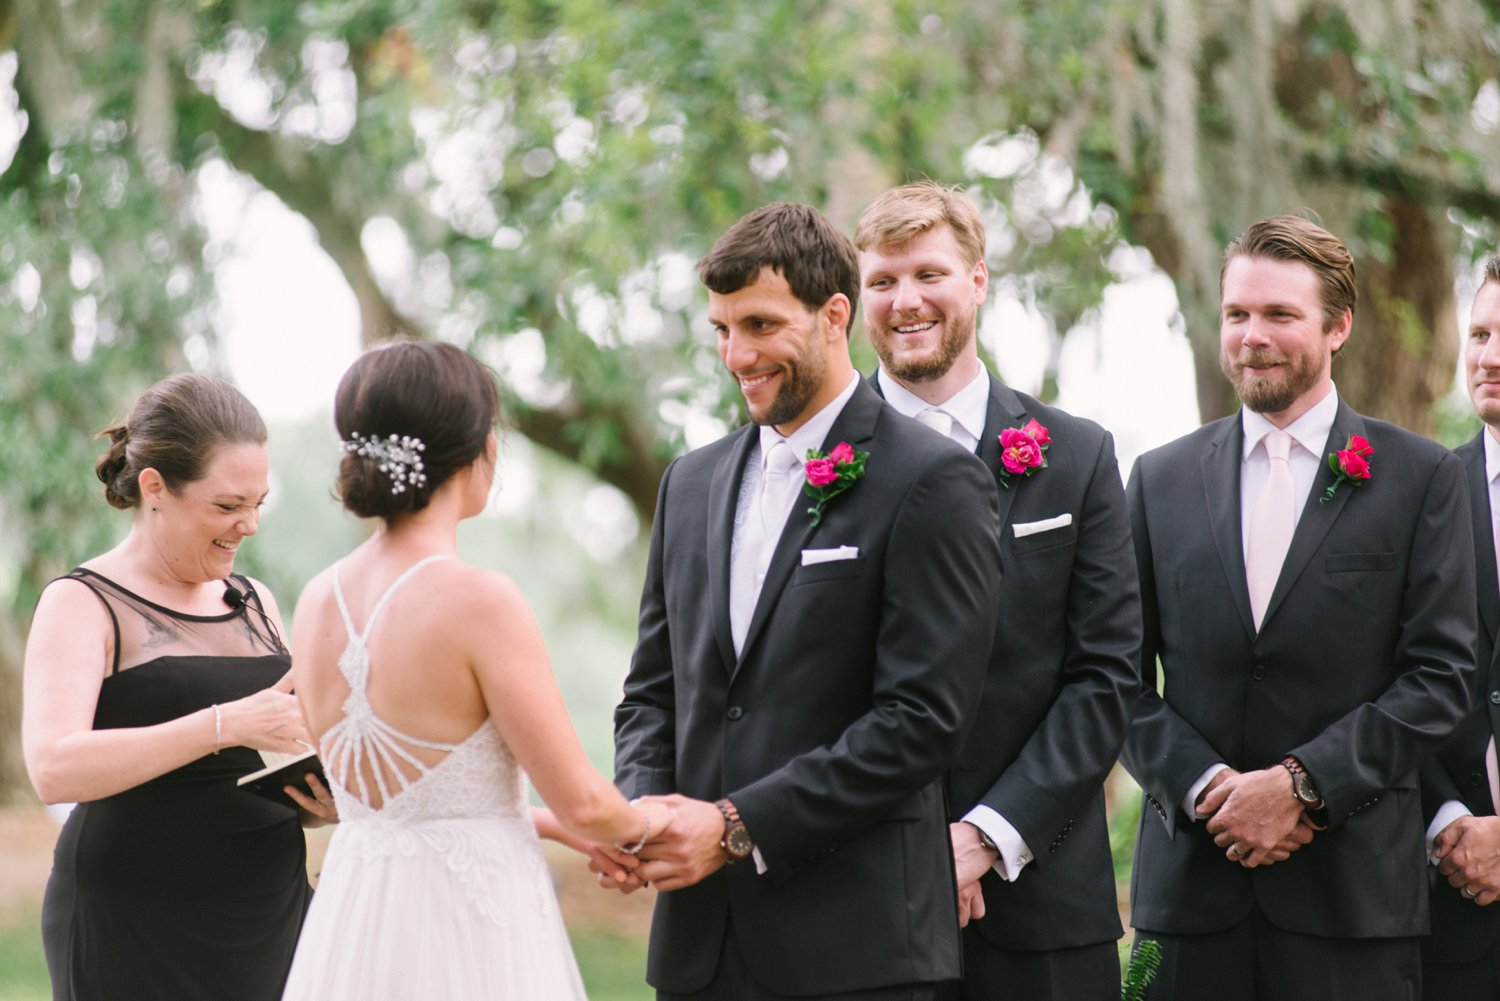 Lindsey_A_Miller_Photography_mcleod_plantation_wedding_charleston_south_carolina_clear_tent_spring_mod_events_044.jpg